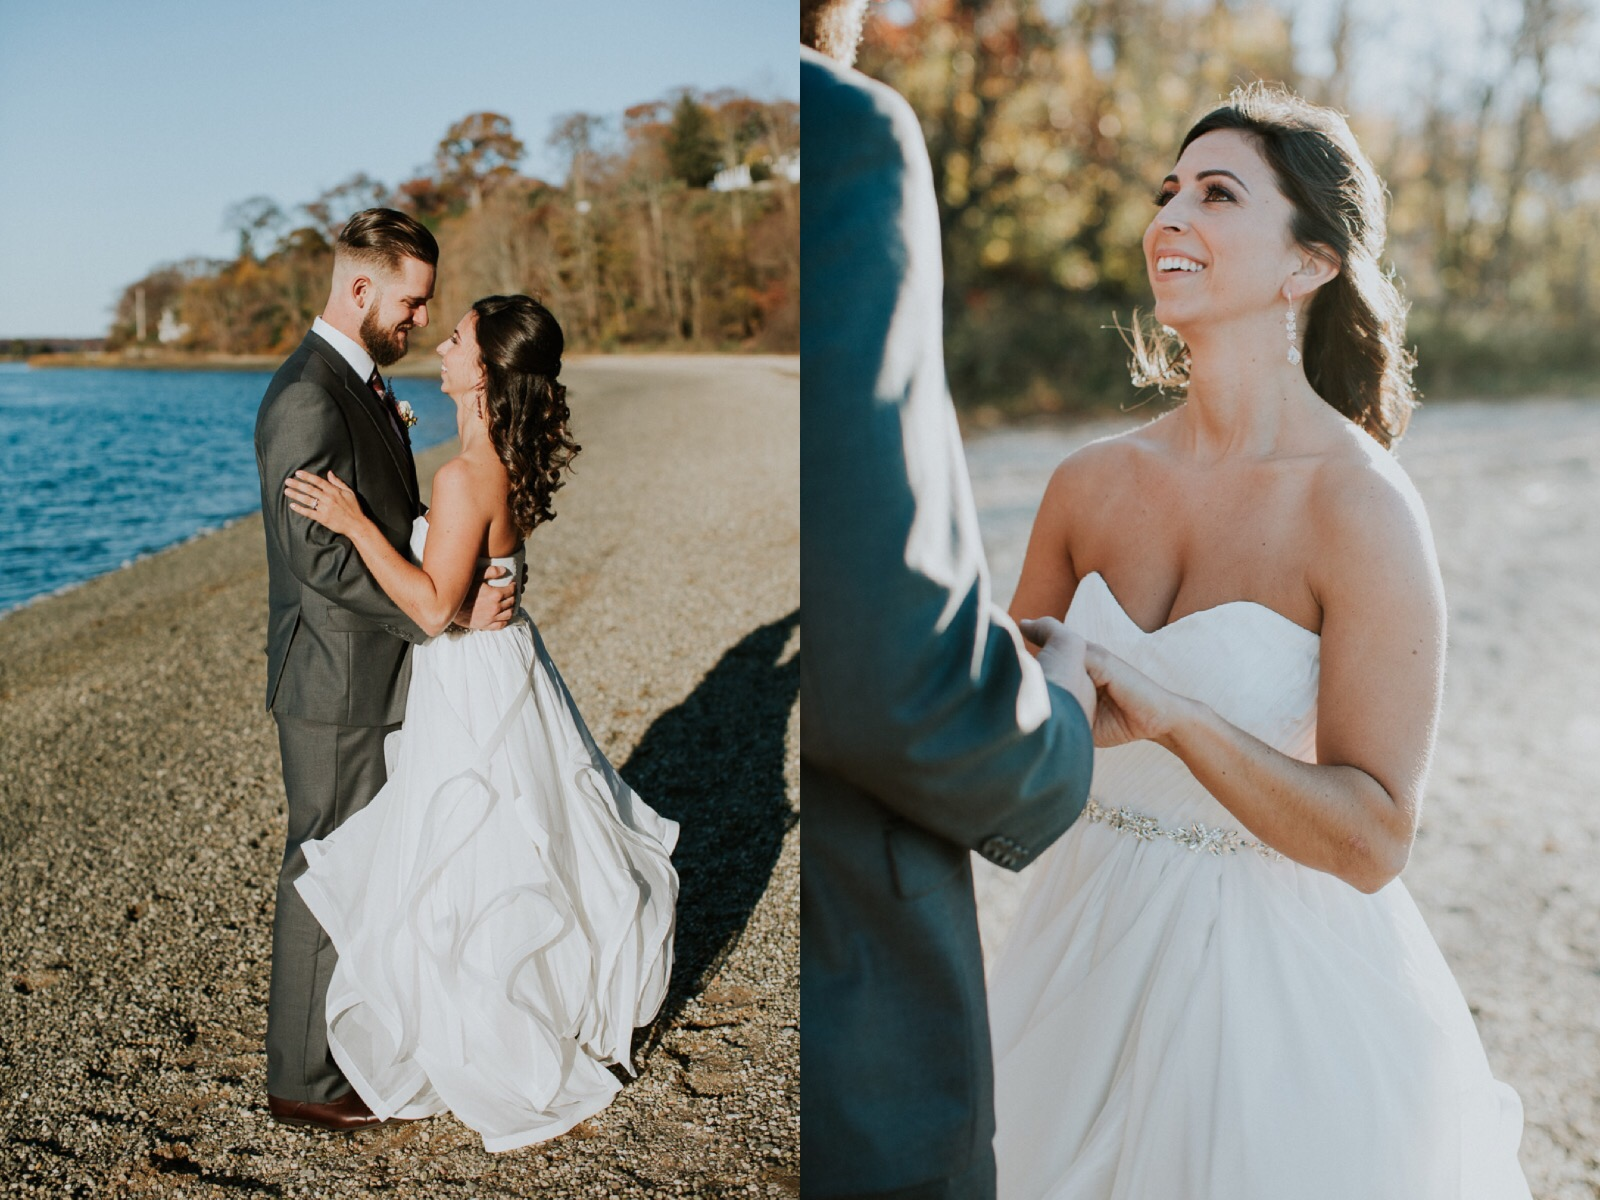 Romantic wedding gowns by Lauren Elaine Bridal. Cambria by Lauren Elaine